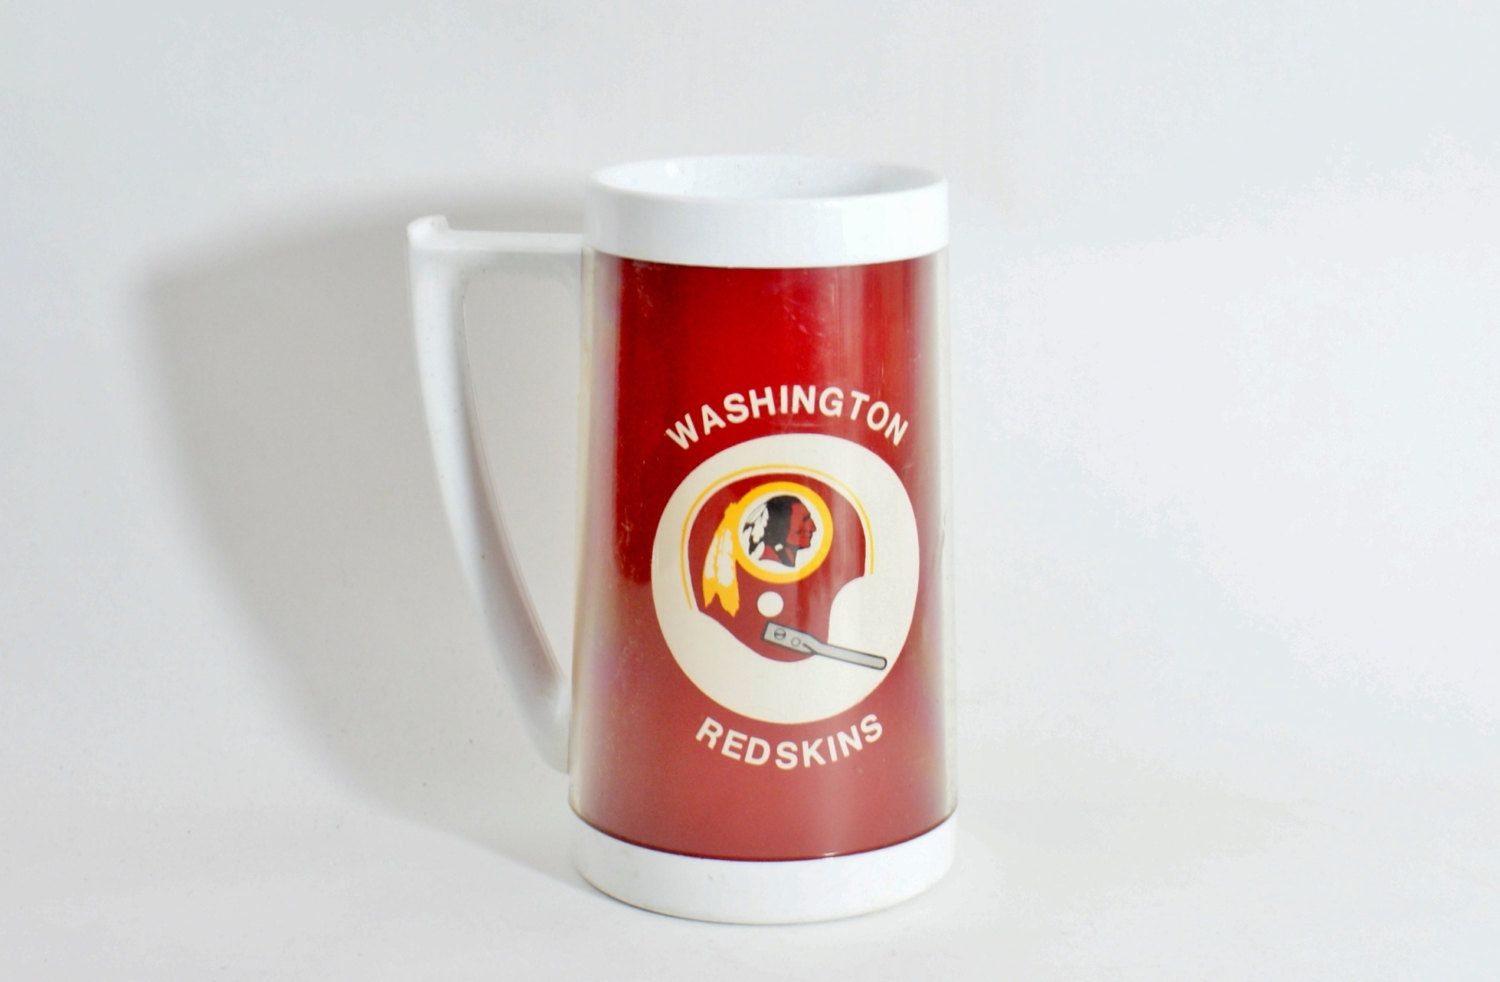 Vintage Thermo Serv Washington Redskins Mug Nfl Football Handled Insulated Usa Rare by DoorCountyVintage on Etsy